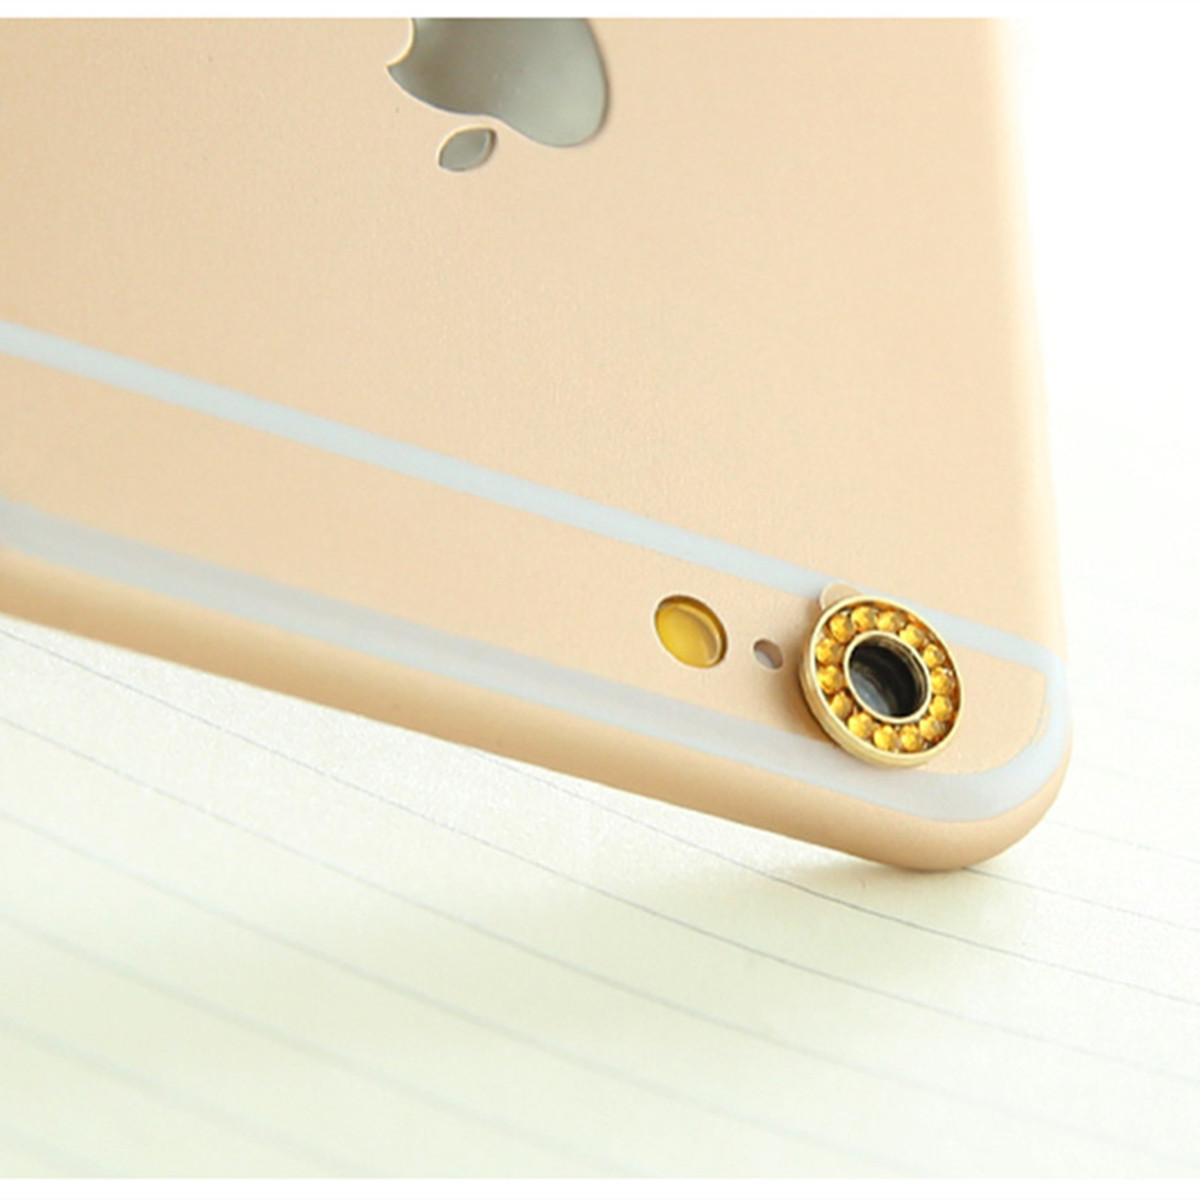 Crystal Back Camera Metal Lens Protective Ring Circle Cover For iPhone 6 6S